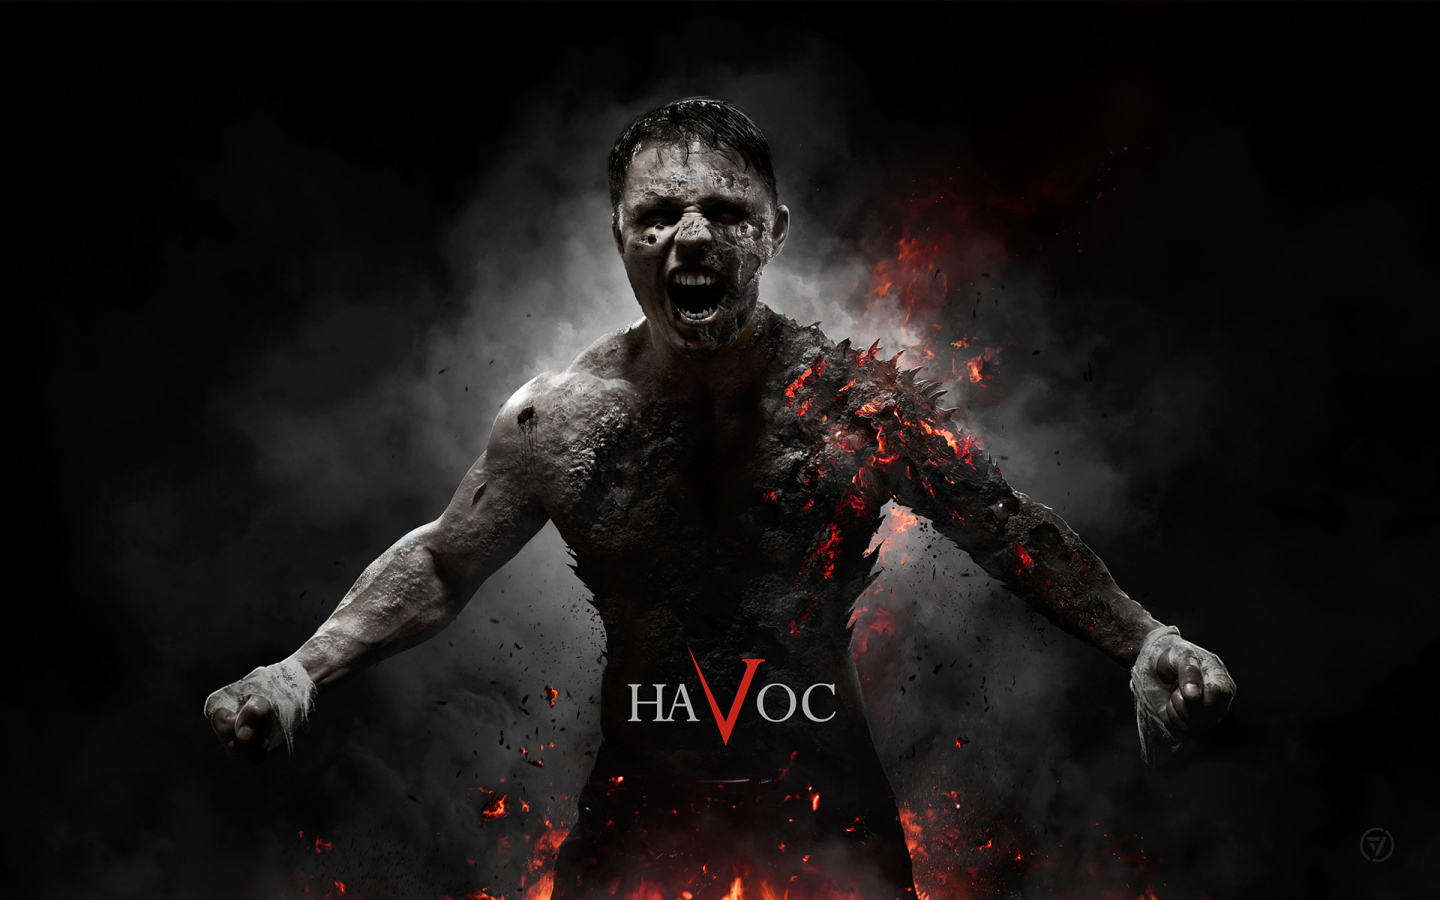 Havoc for 1440 x 900 widescreen resolution